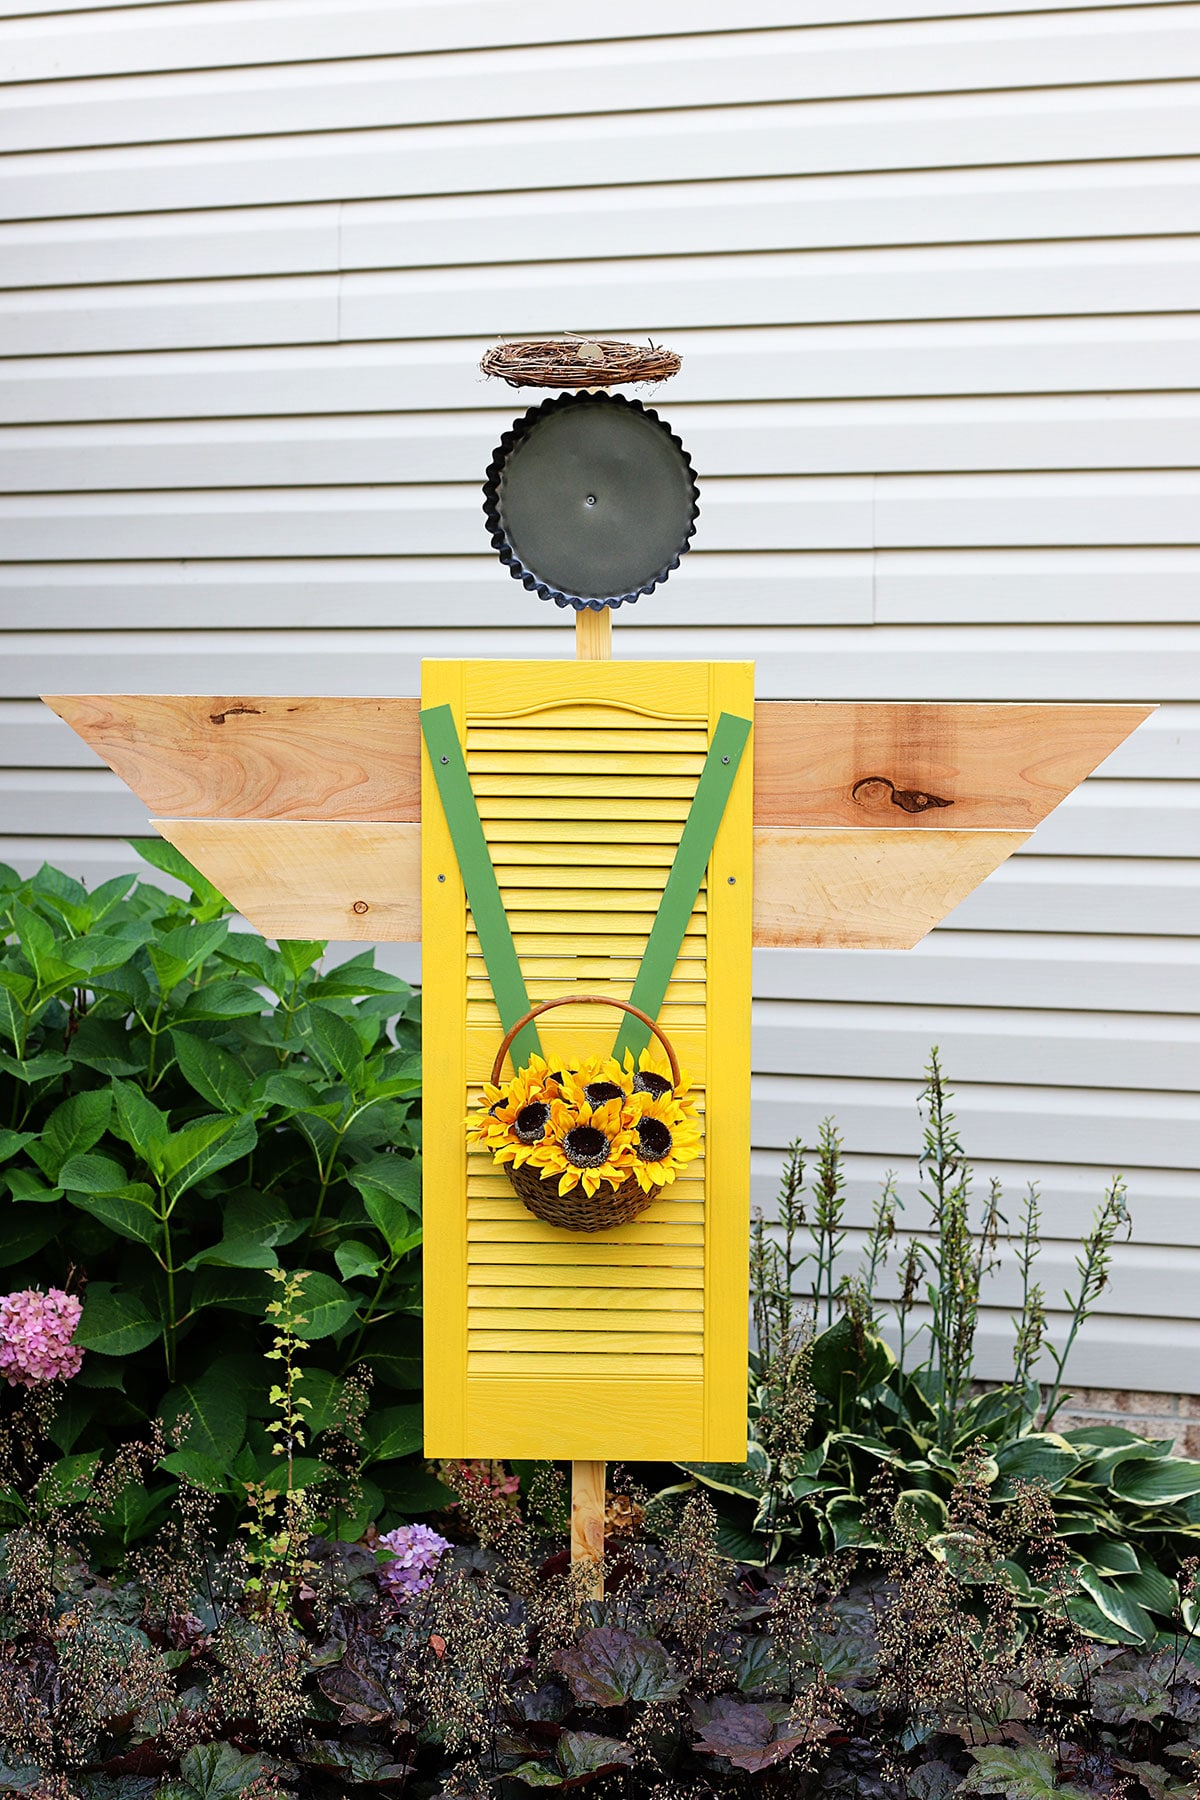 A shutter angel for the garden made with a repurposed shutter from the thrift store. The angel is holding a basket of sunflowers and wearing a halo made from a grapevine wreath.